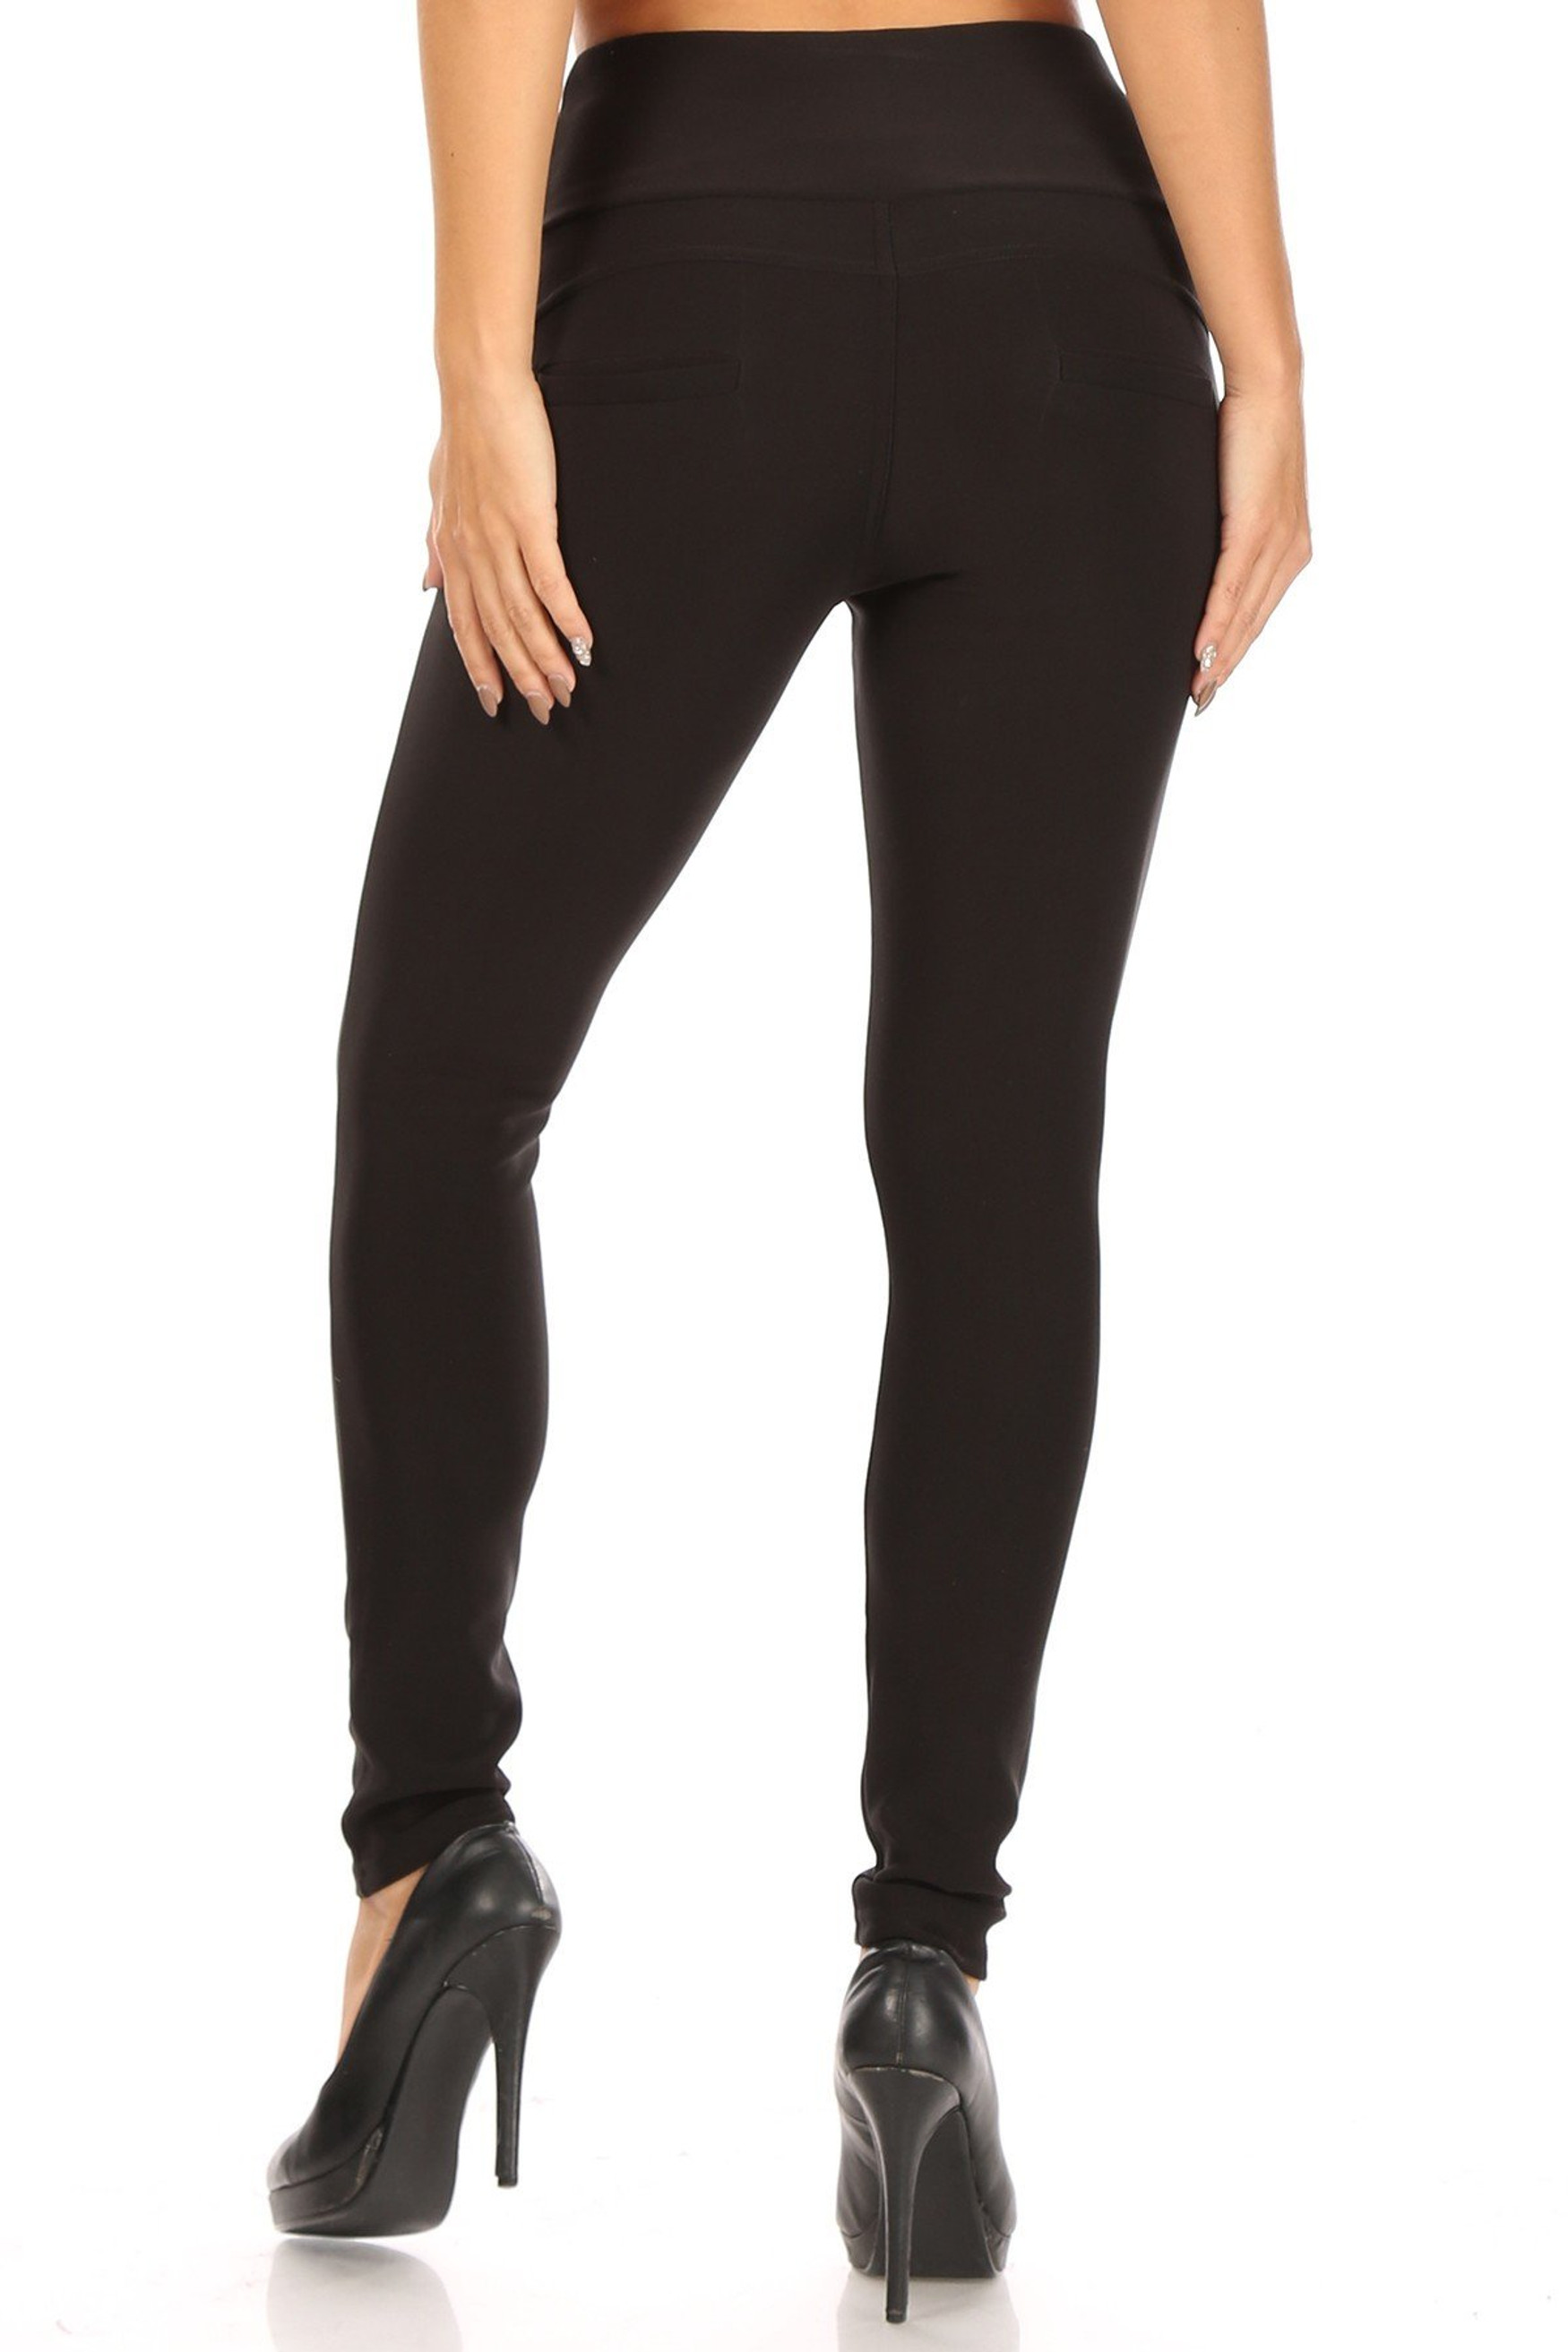 Black Button Front High Waisted Body Sculpting Treggings